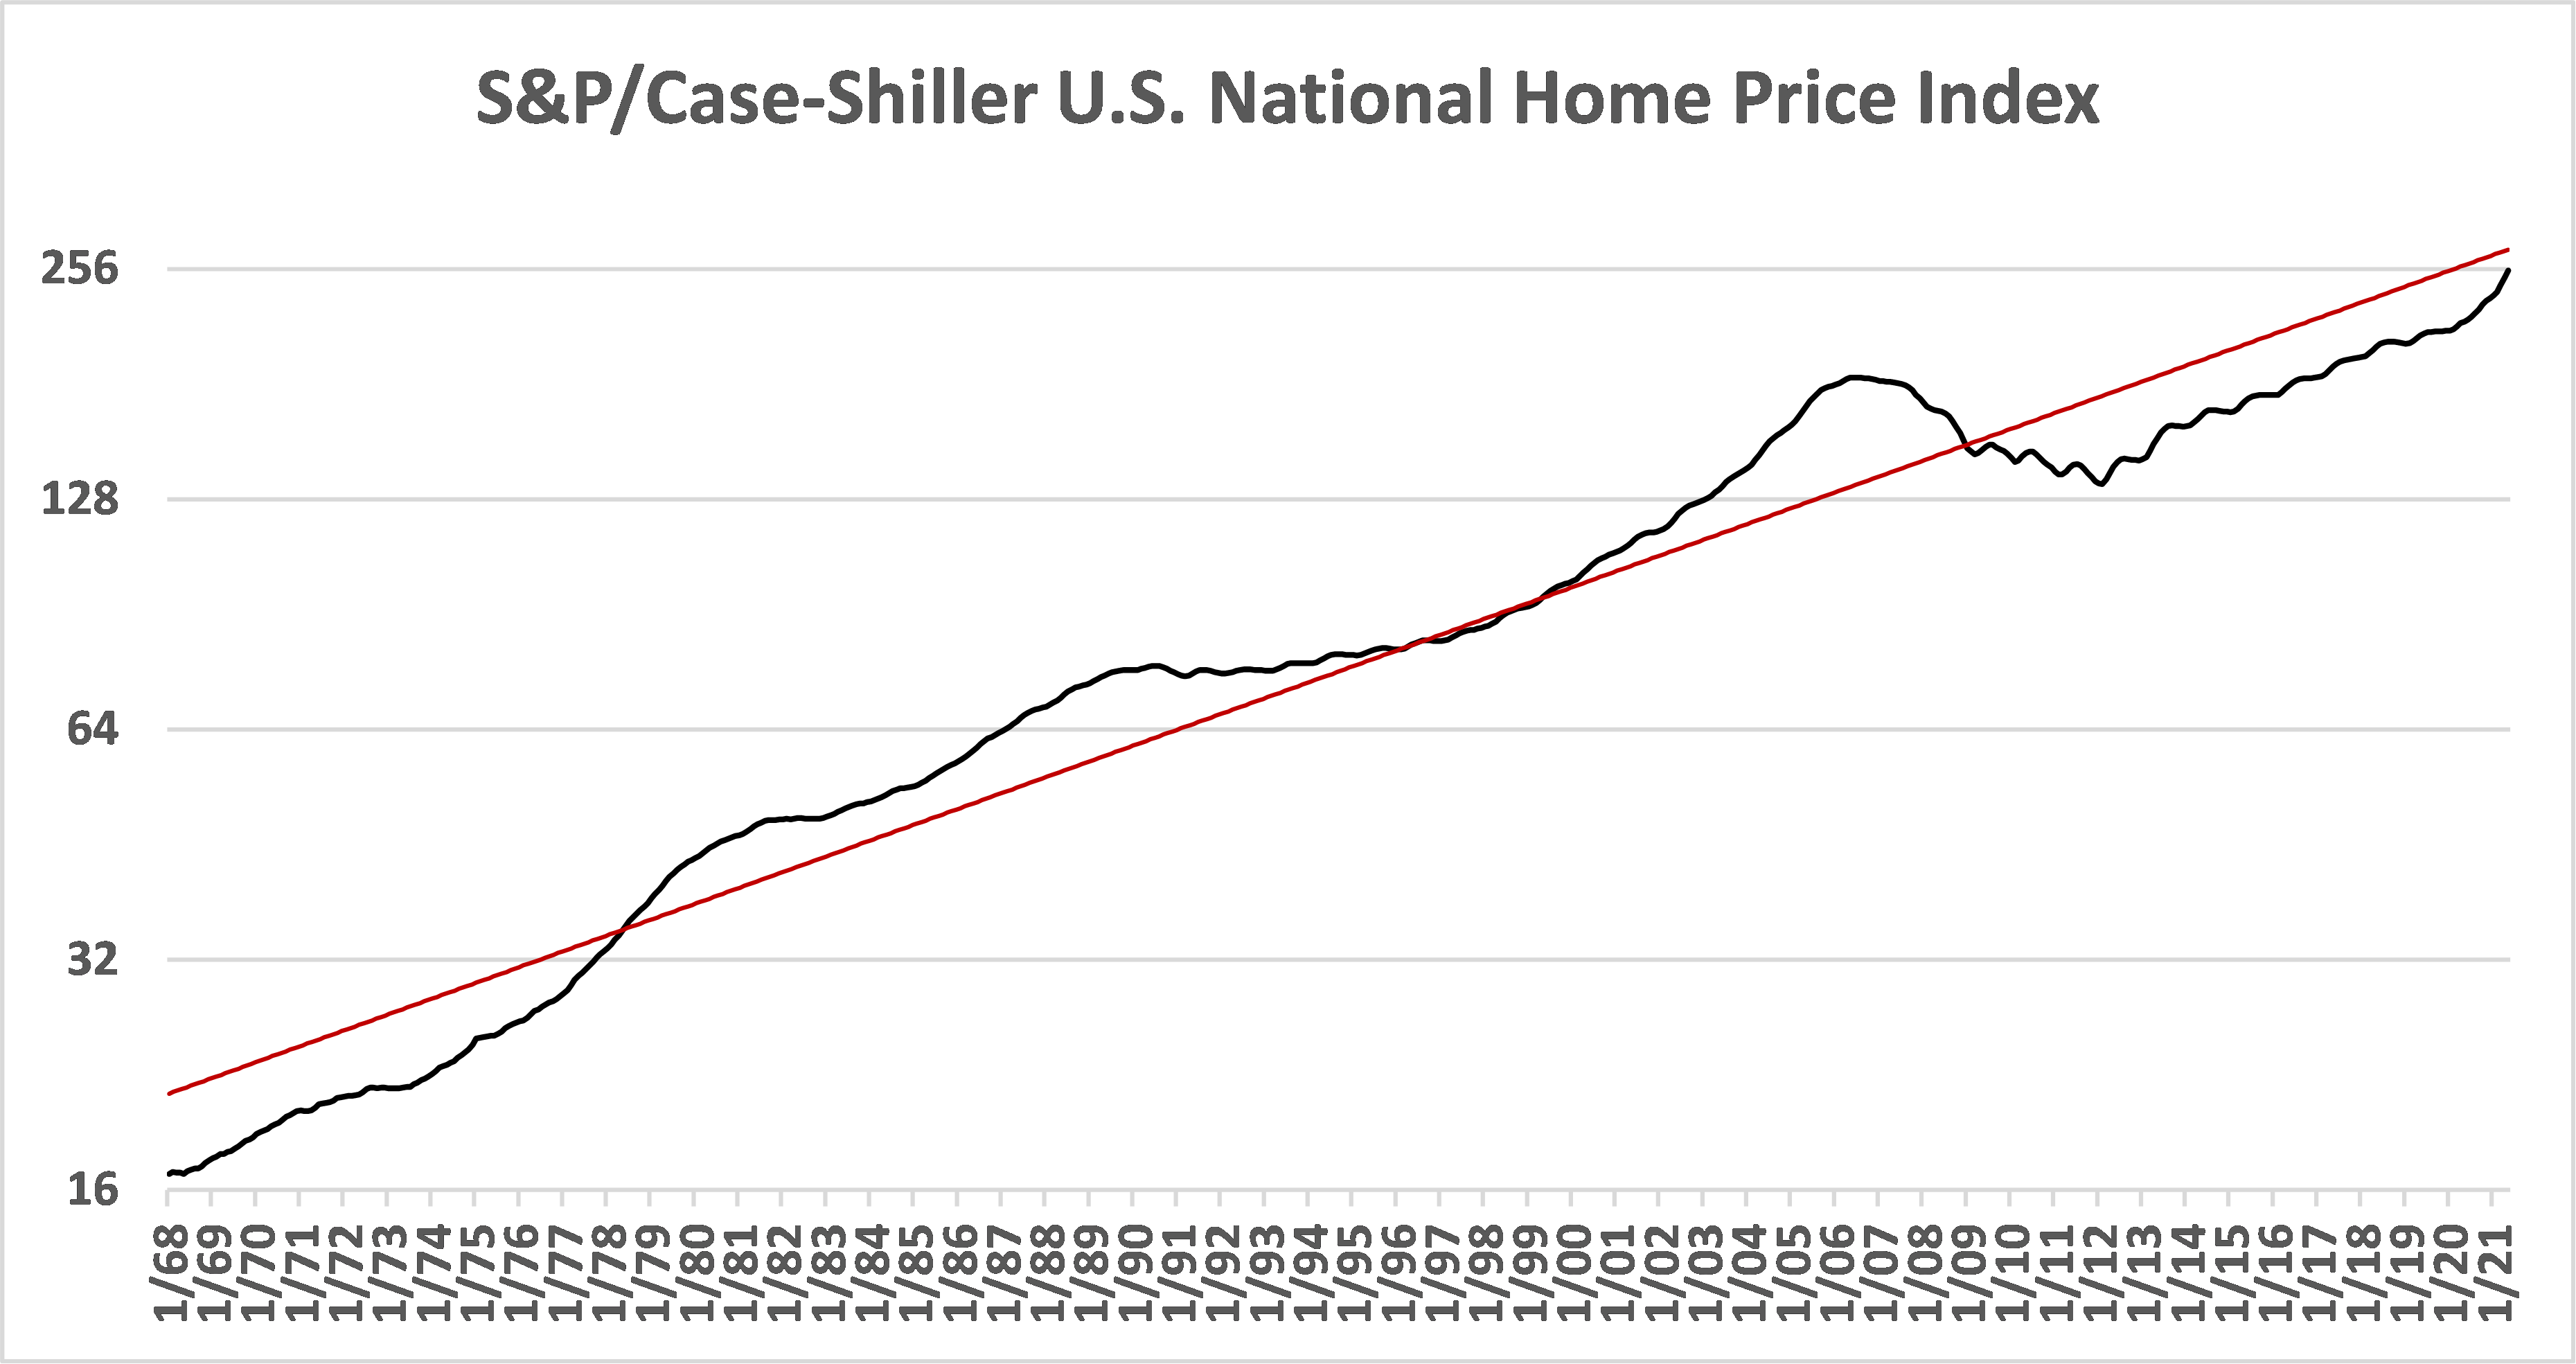 US National Home Price Index with Trendline